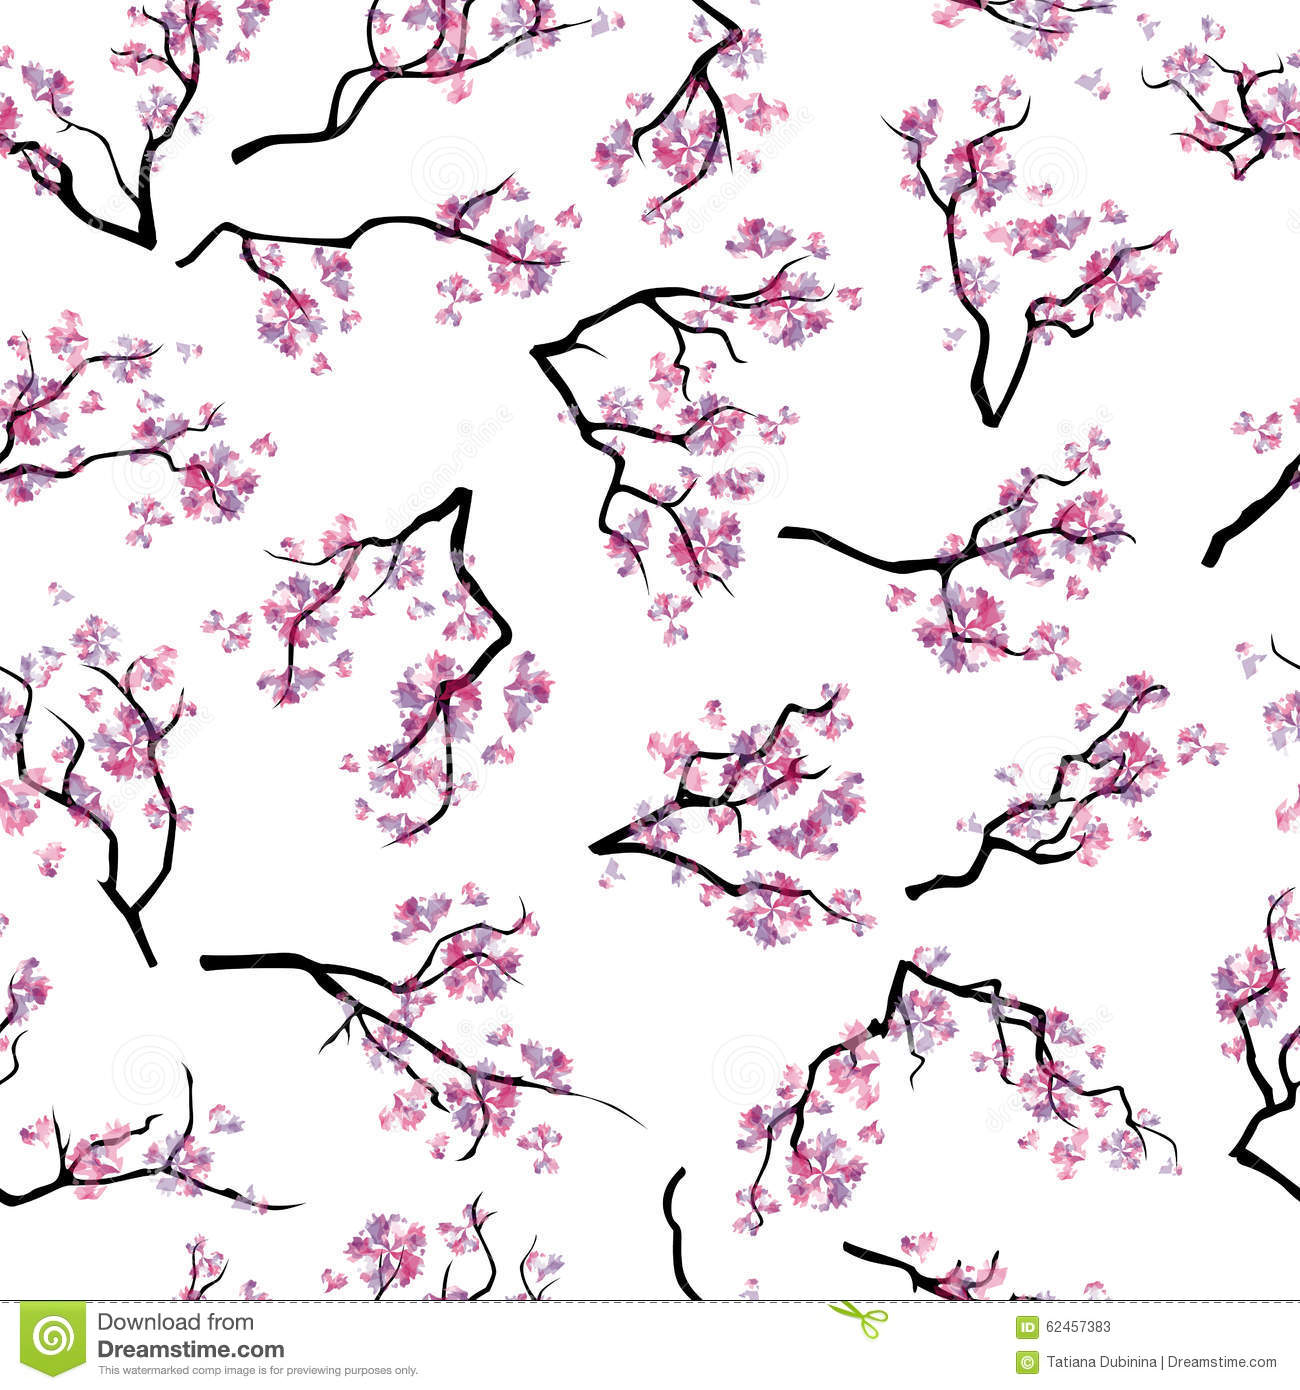 Seamless pattern with branches of blooming cherry-tree